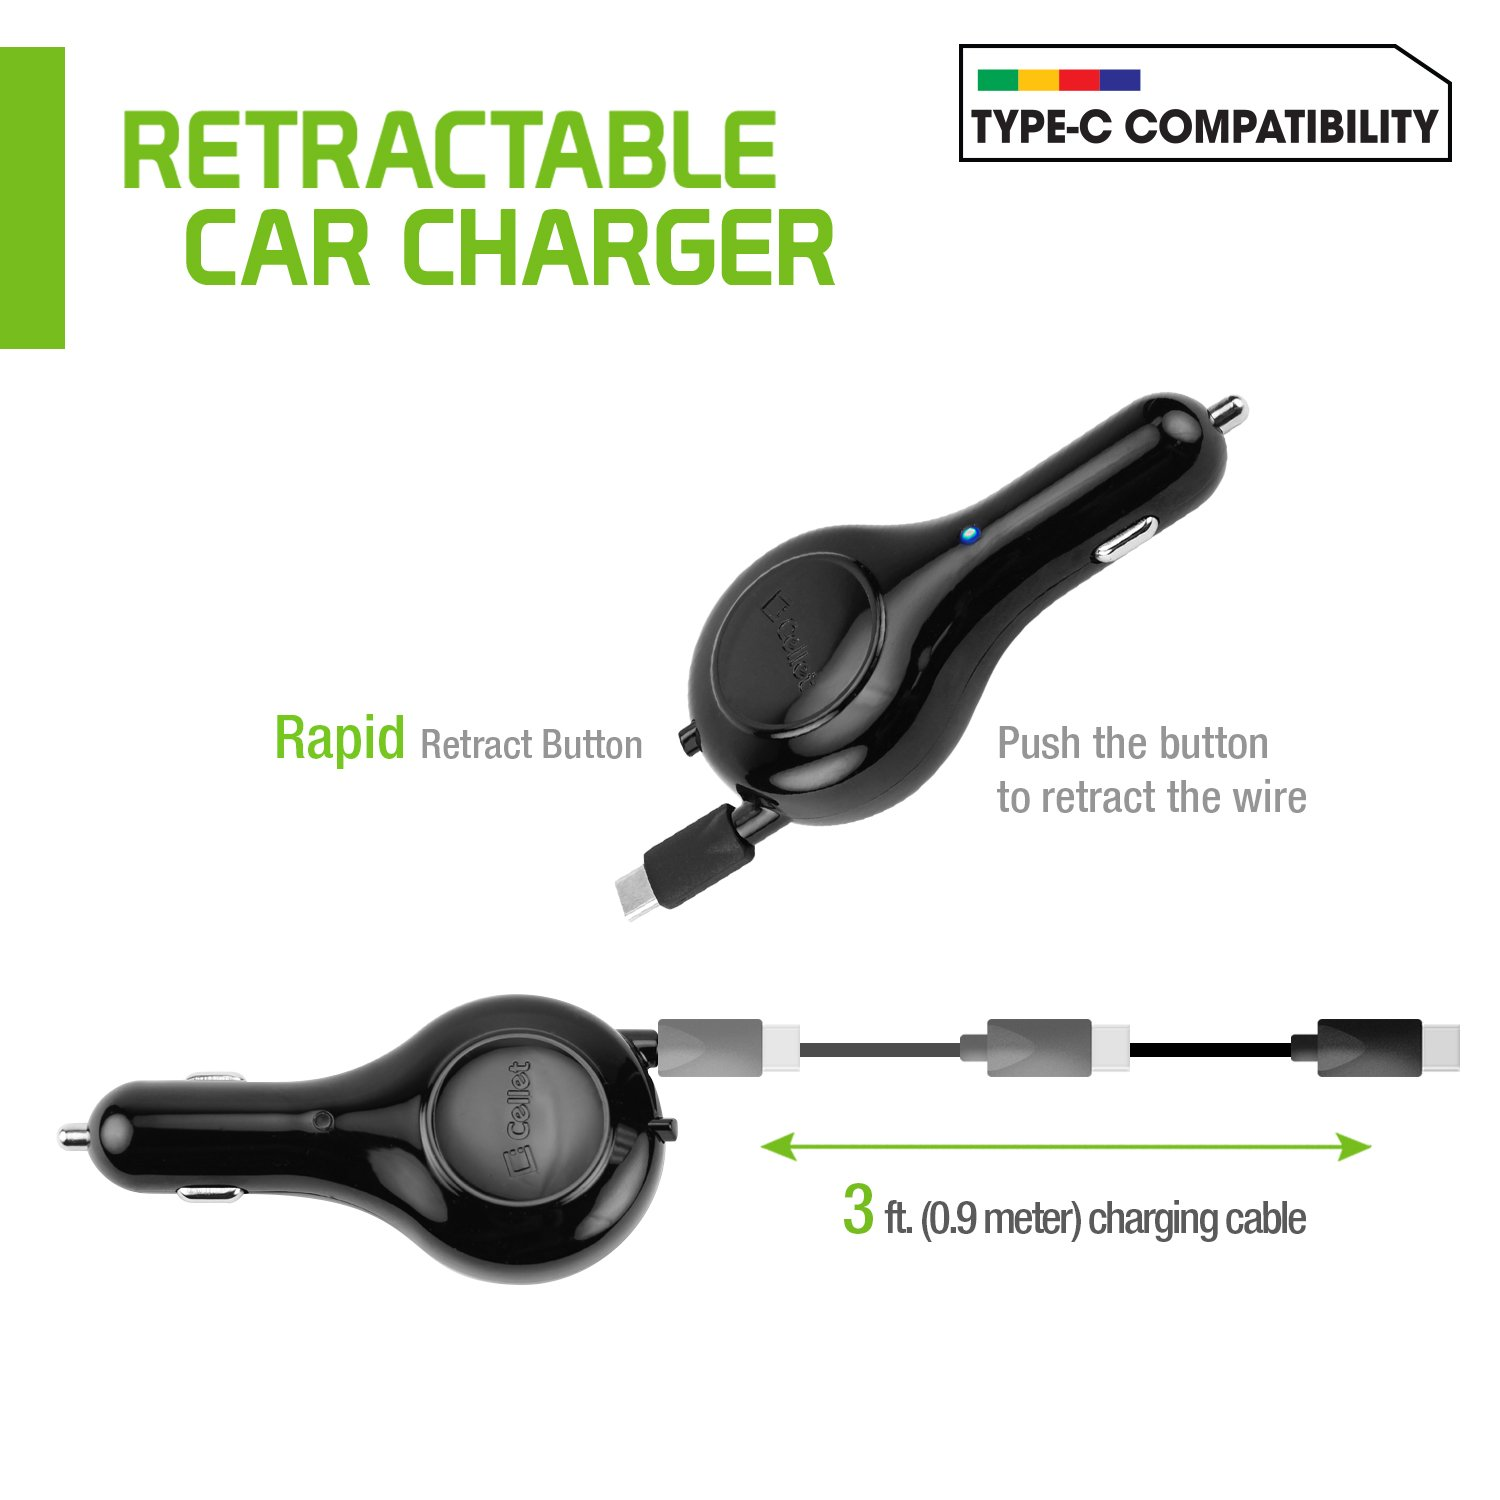 Fast and High Speed 15 Watt 6T /& Alcatel 7 5,5T Cellet 3Amp 6 Idol 5 3T Compatible for One Plus3 USB Type-C Retractable Car Vehicle Charger REVVL 2 Plus Idol 4S Pulse Mix A50 A5 PUSBC30R/_W6T